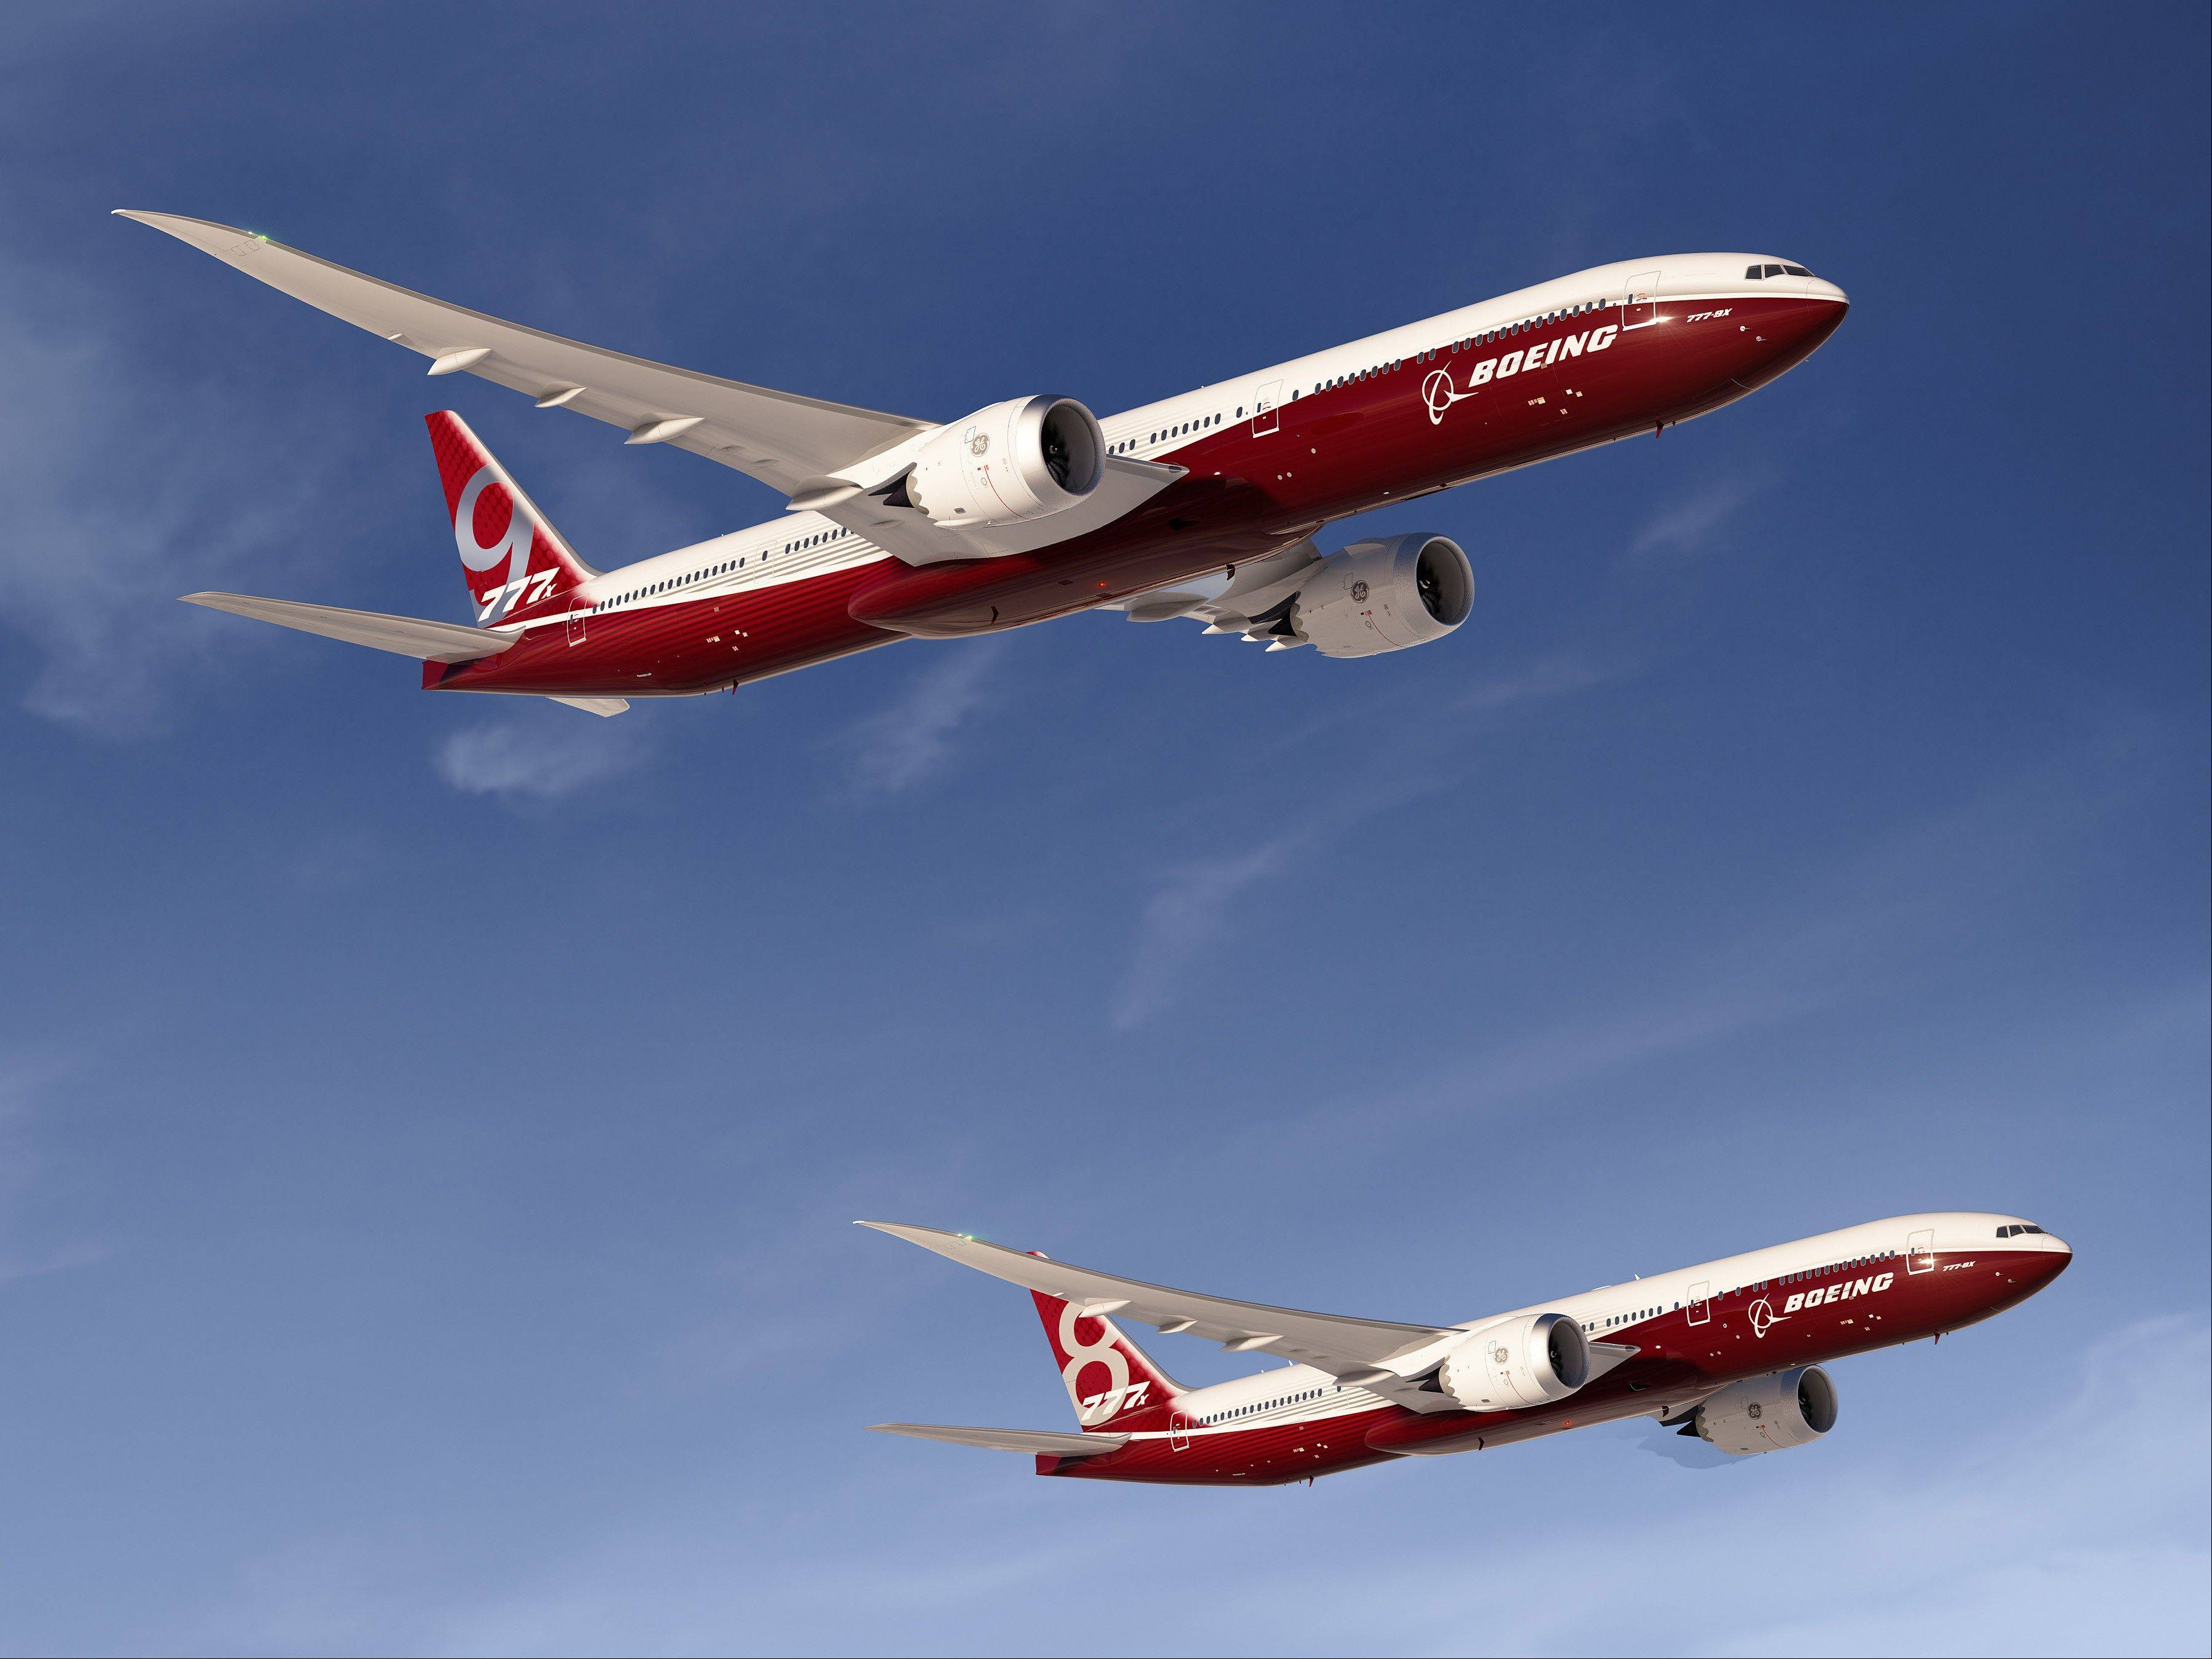 Illinois has joined more than 20 states making a pitch to woo the aircraft manufacturer is to move production of its 777x airliners out of Washington state.